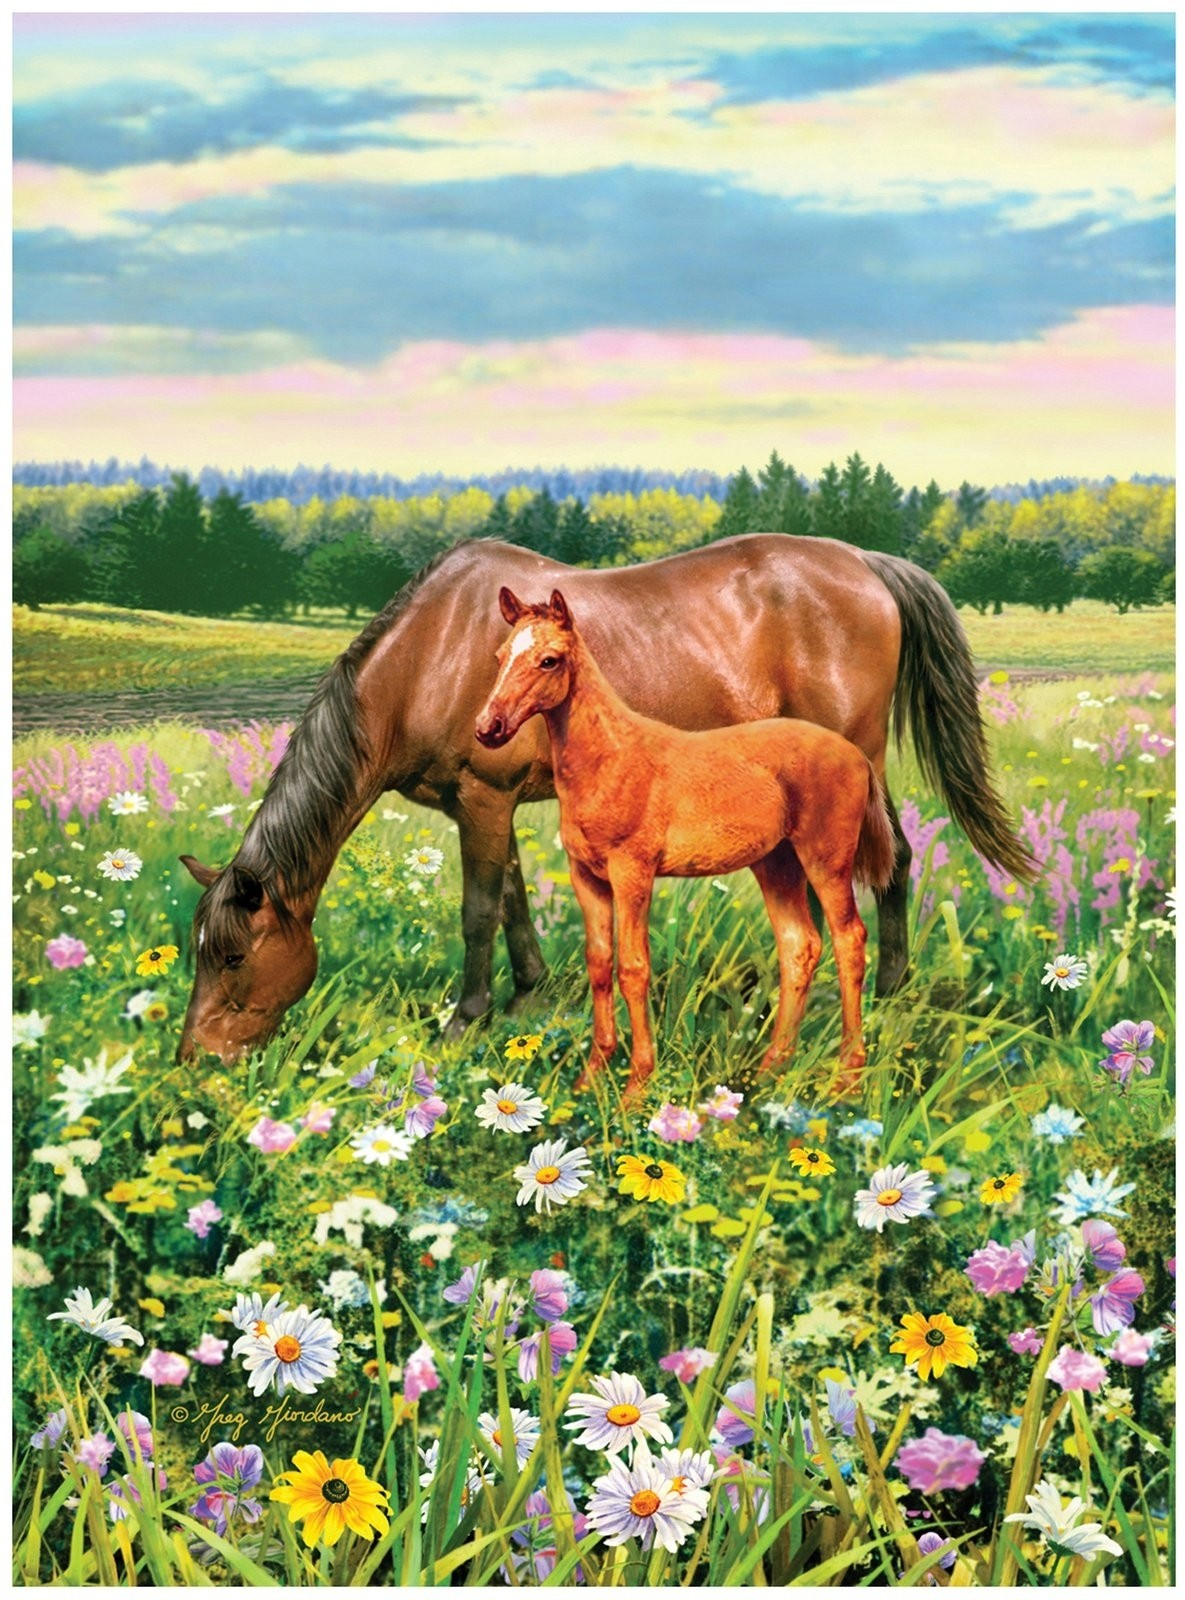 Puzzles Price In India. Buy Puzzles Online At Best Price